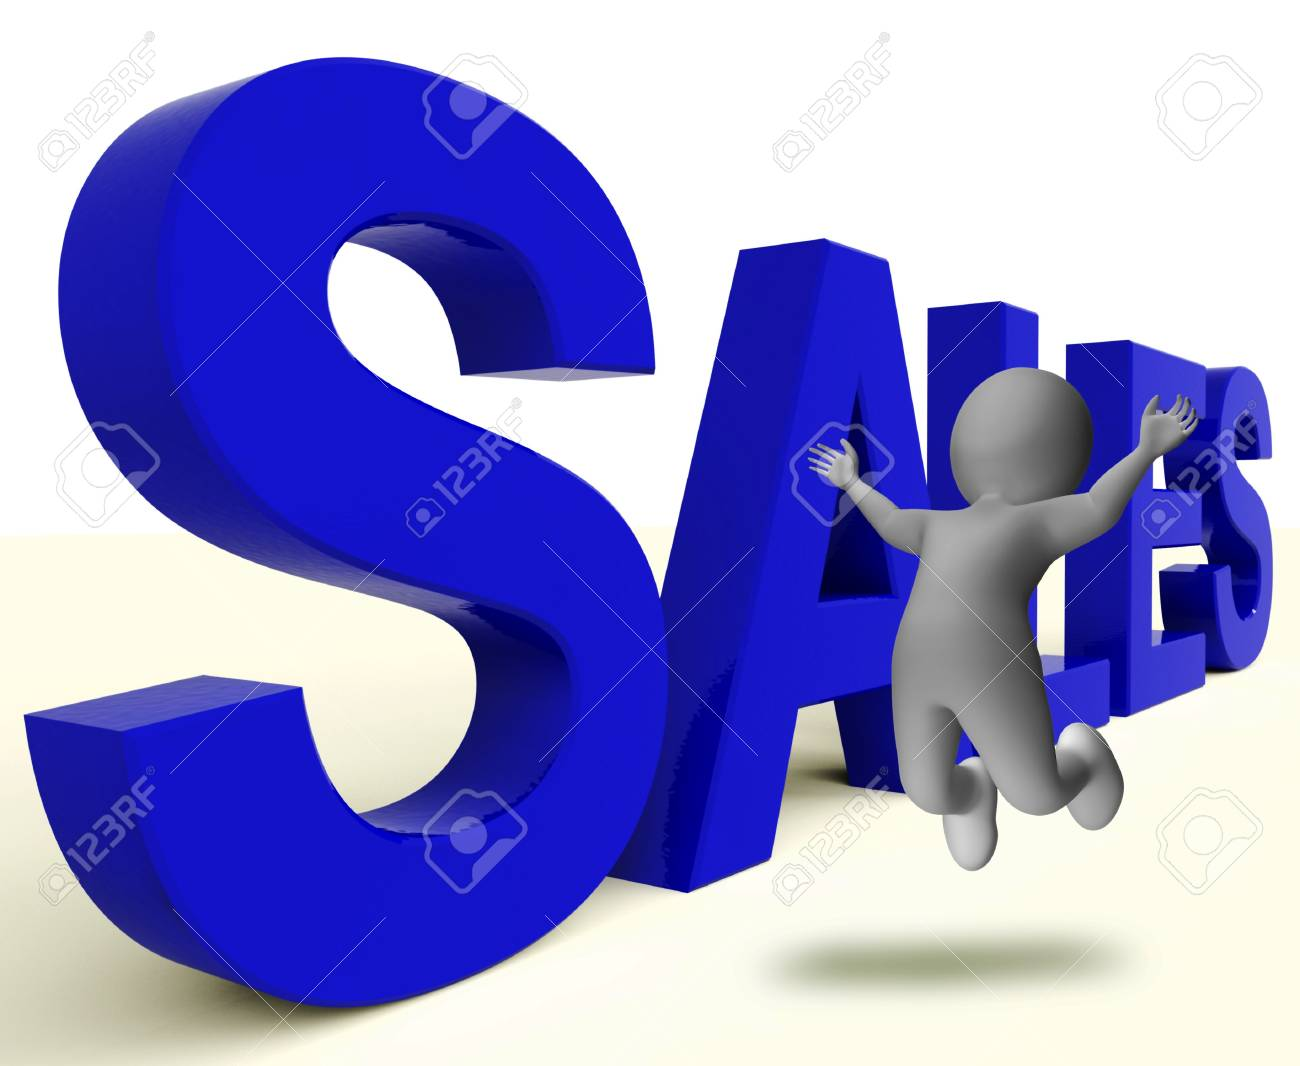 Sales Word Representing Business Selling Or Commerce Stock Photo - 18271109